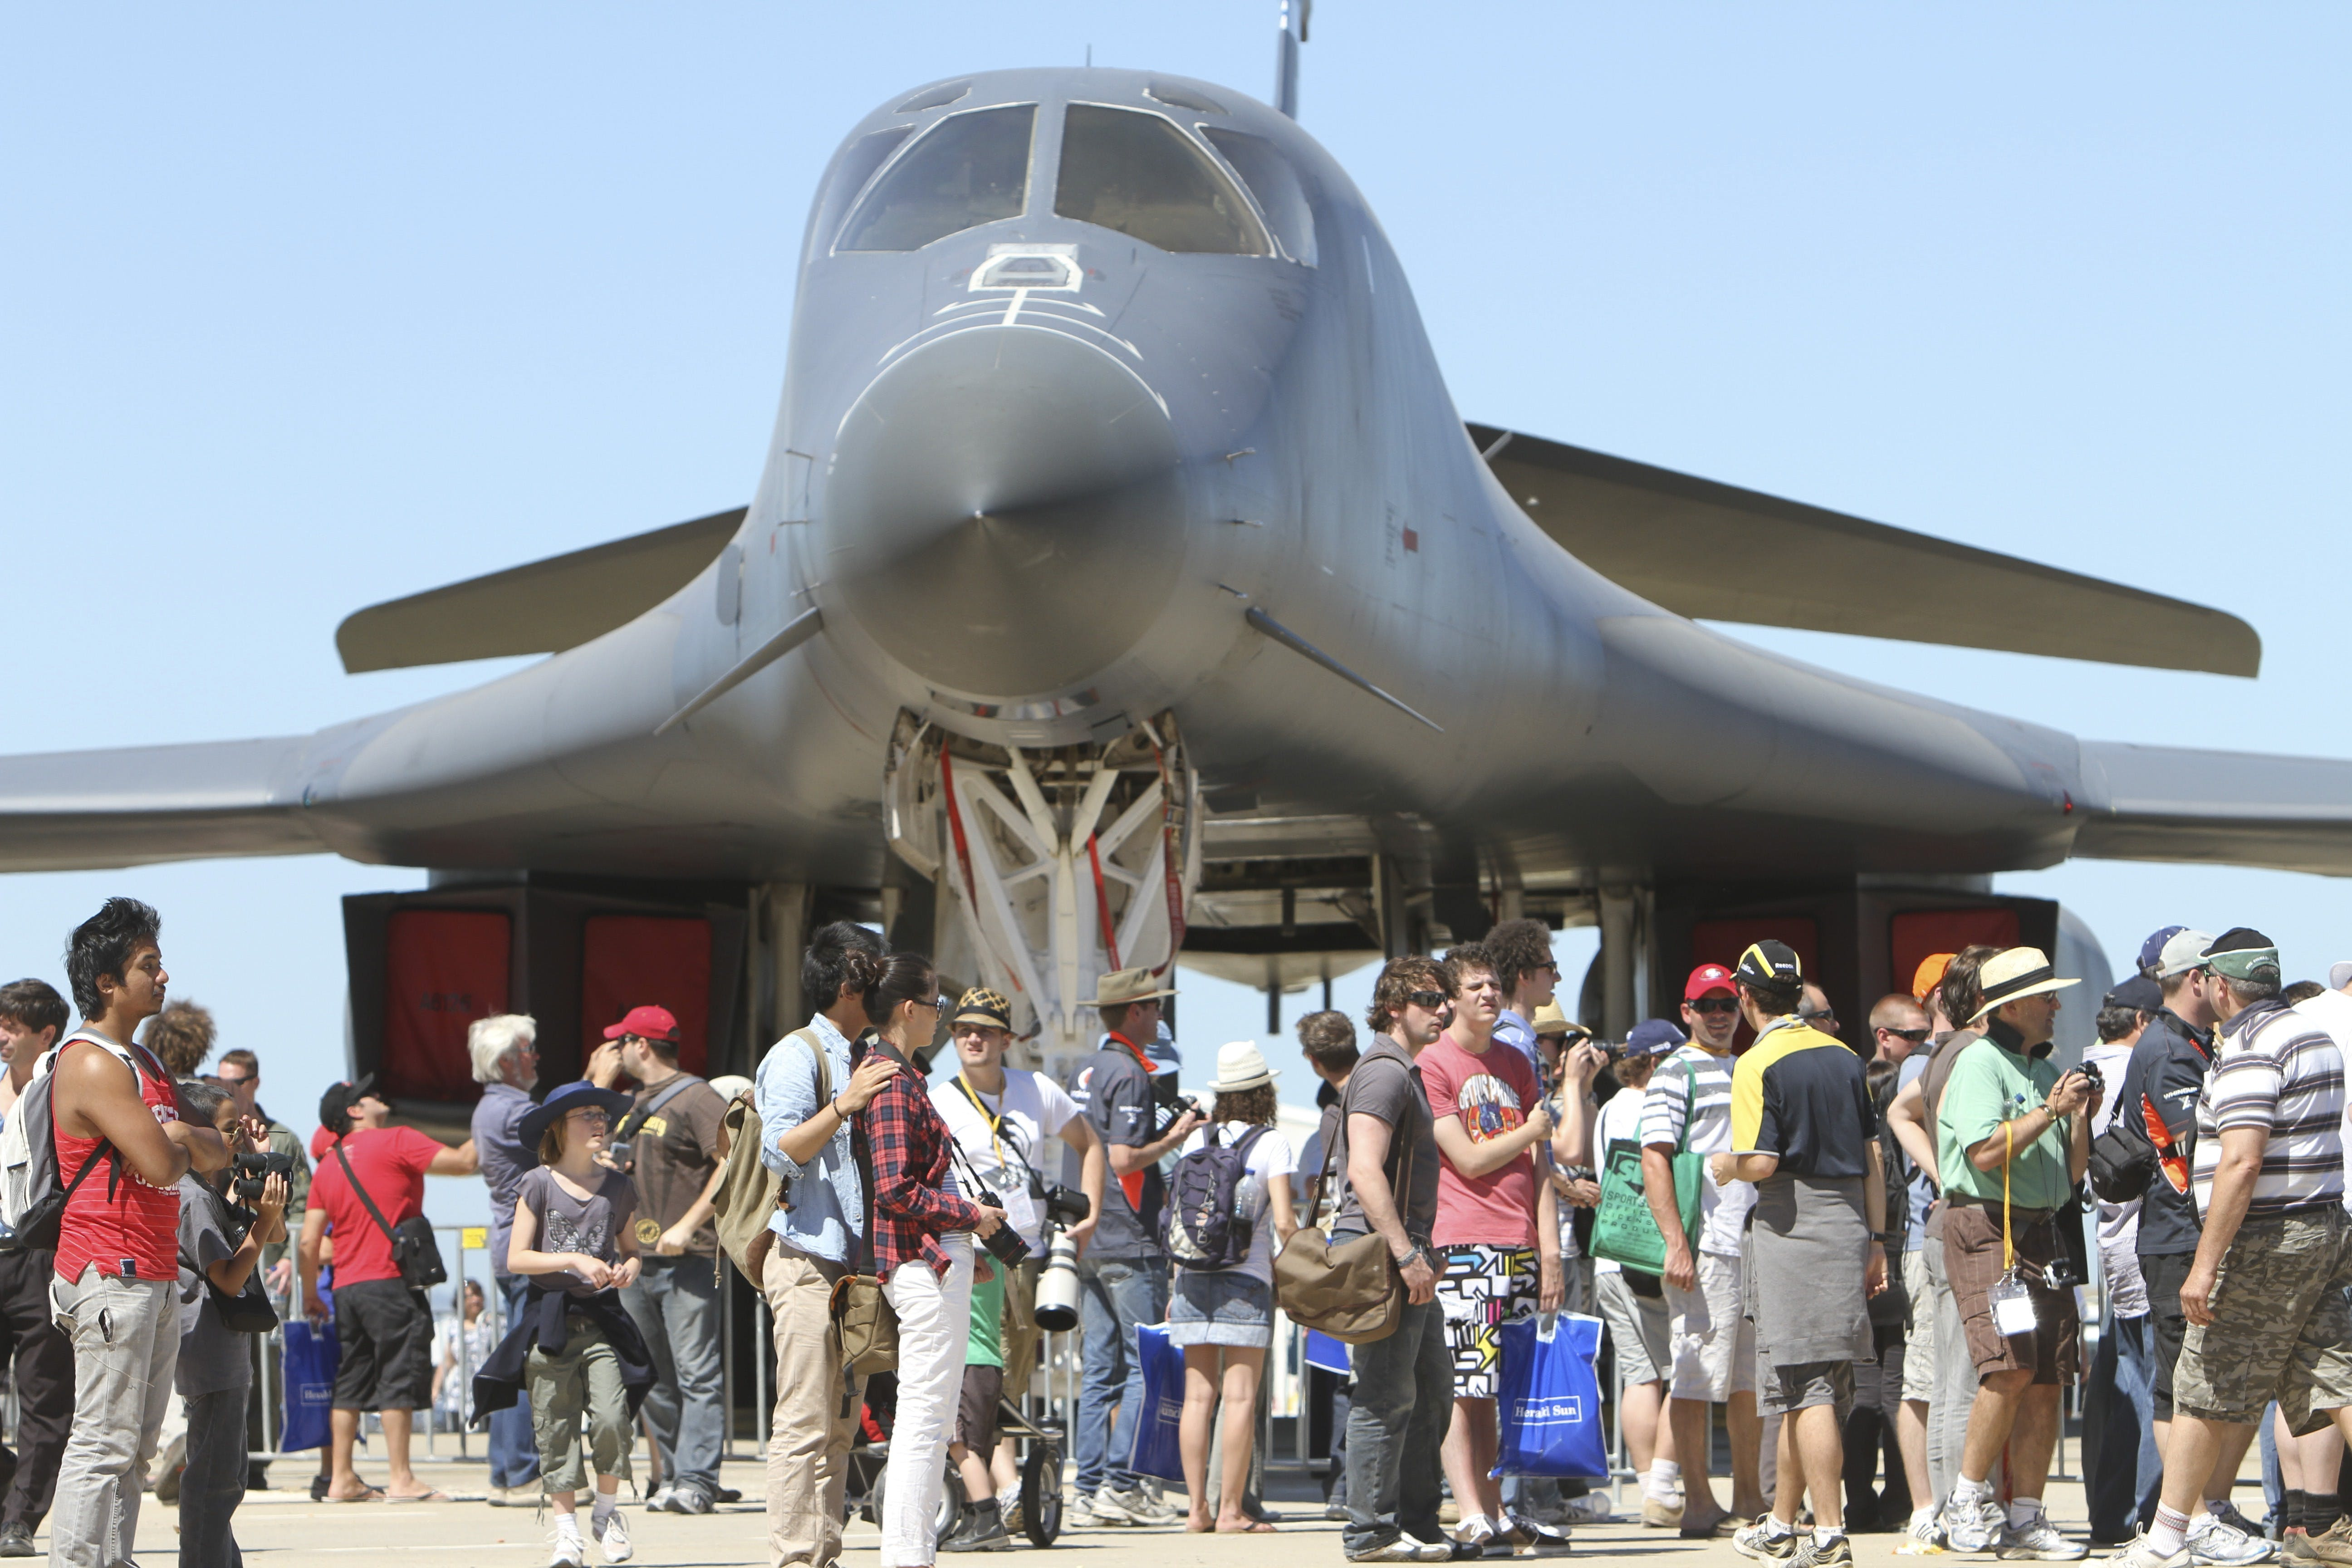 Australian International Airshow - St Kilda Accommodation